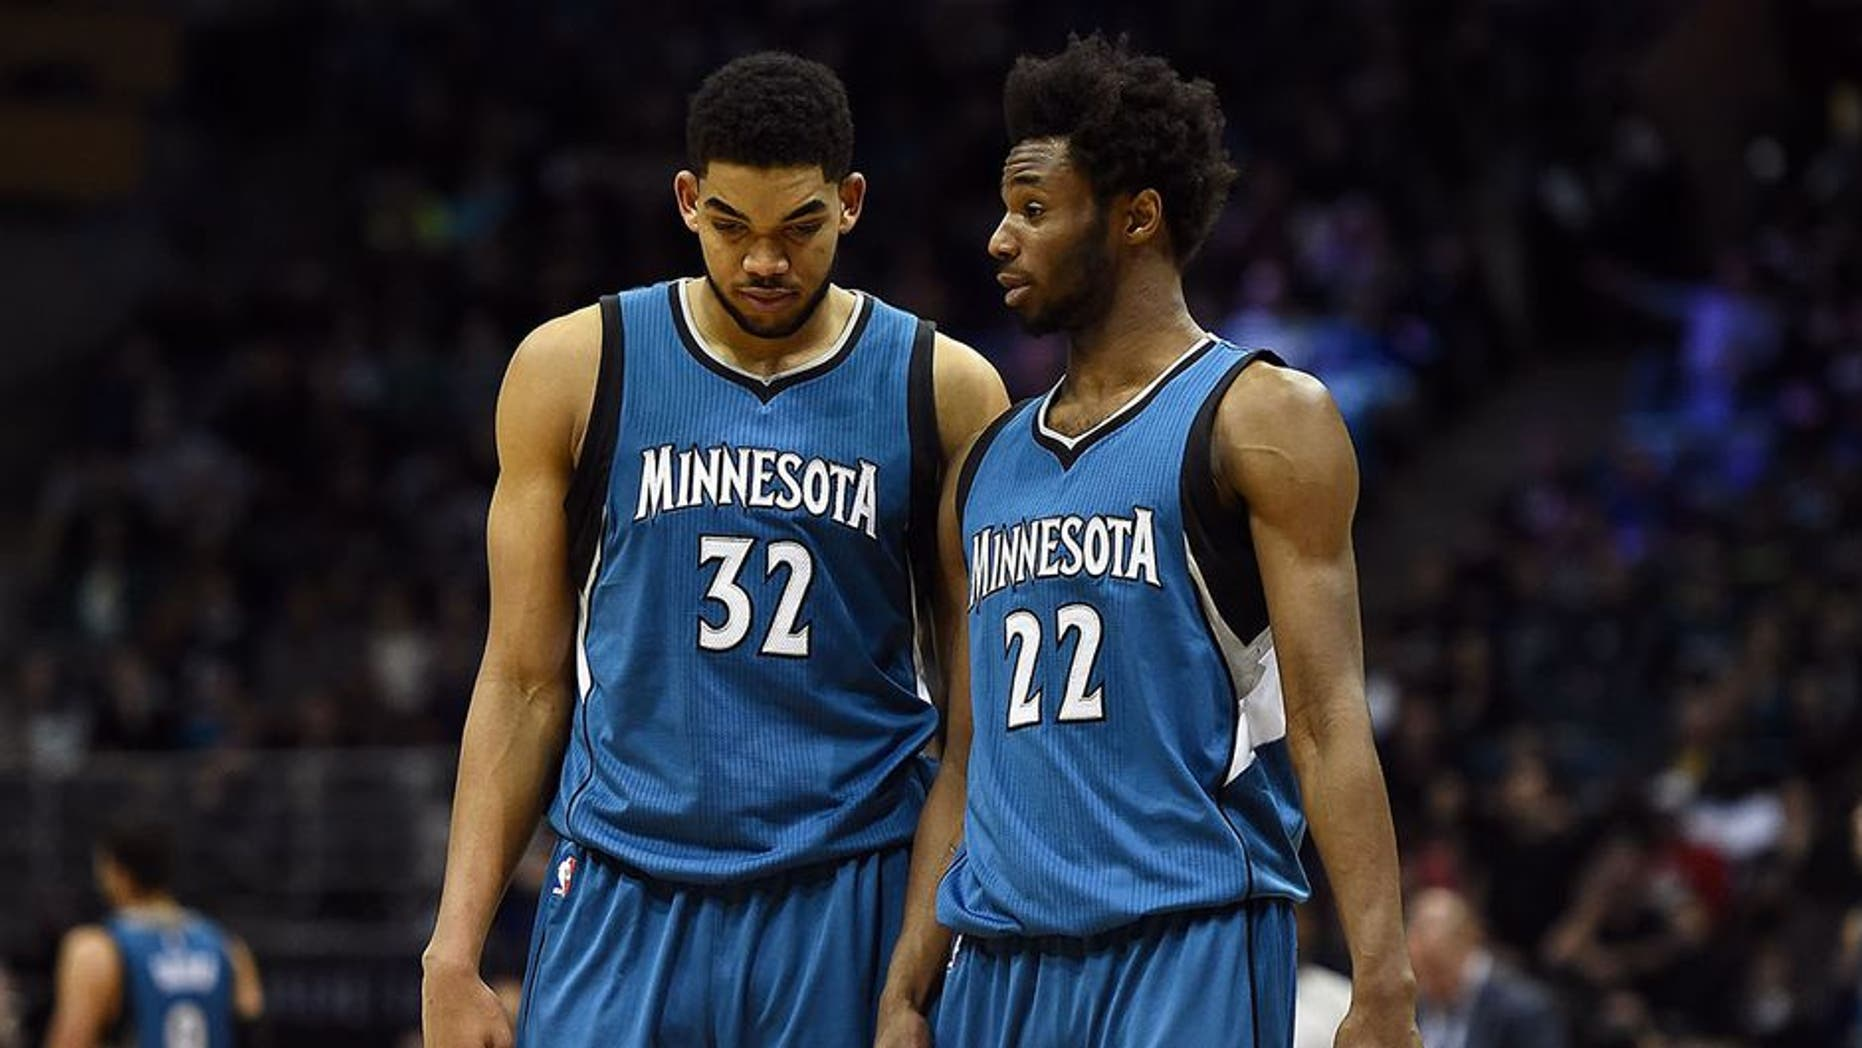 MILWAUKEE, WI - MARCH 11: Karl-Anthony Towns #32 and Andrew Wiggins #22 of the Minnesota Timberwolves walks backcourt during a game against the Milwaukee Bucks at the BMO Harris Bradley Center on March 11, 2017 in Milwaukee, Wisconsin. NOTE TO USER: User expressly acknowledges and agrees that, by downloading and or using this photograph, User is consenting to the terms and conditions of the Getty Images License Agreement. (Photo by Stacy Revere/Getty Images)